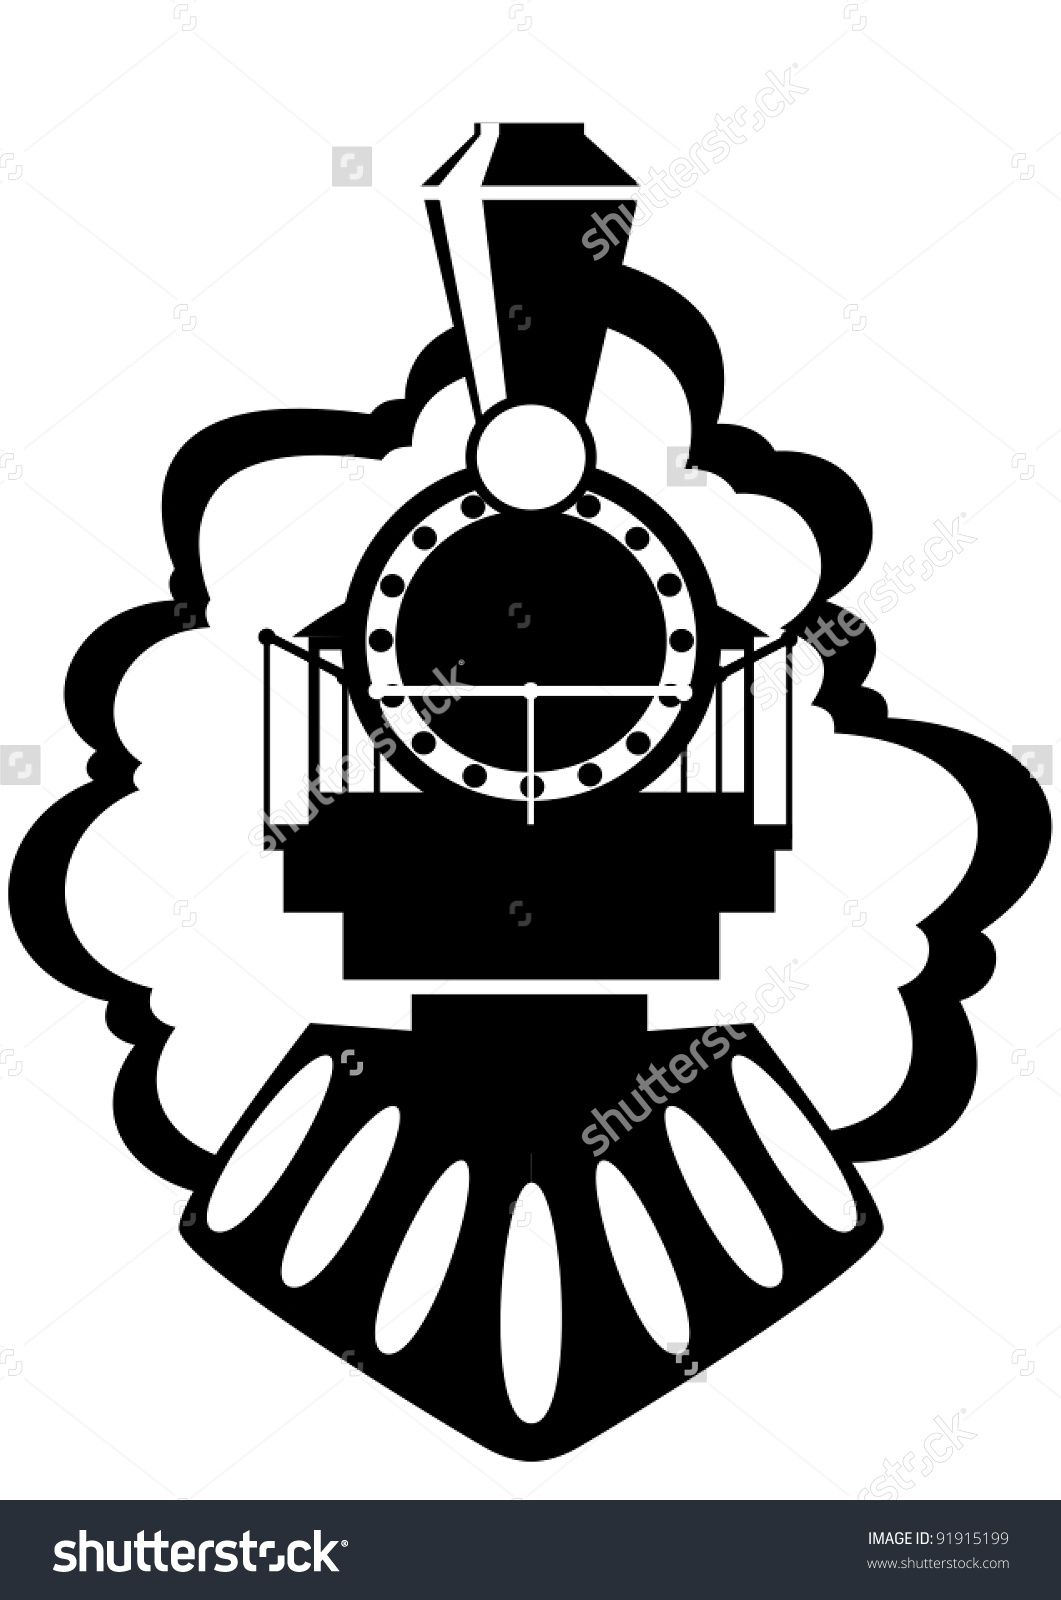 Image result for train silhouette clipart | Train Party | Train ... svg freeuse stock